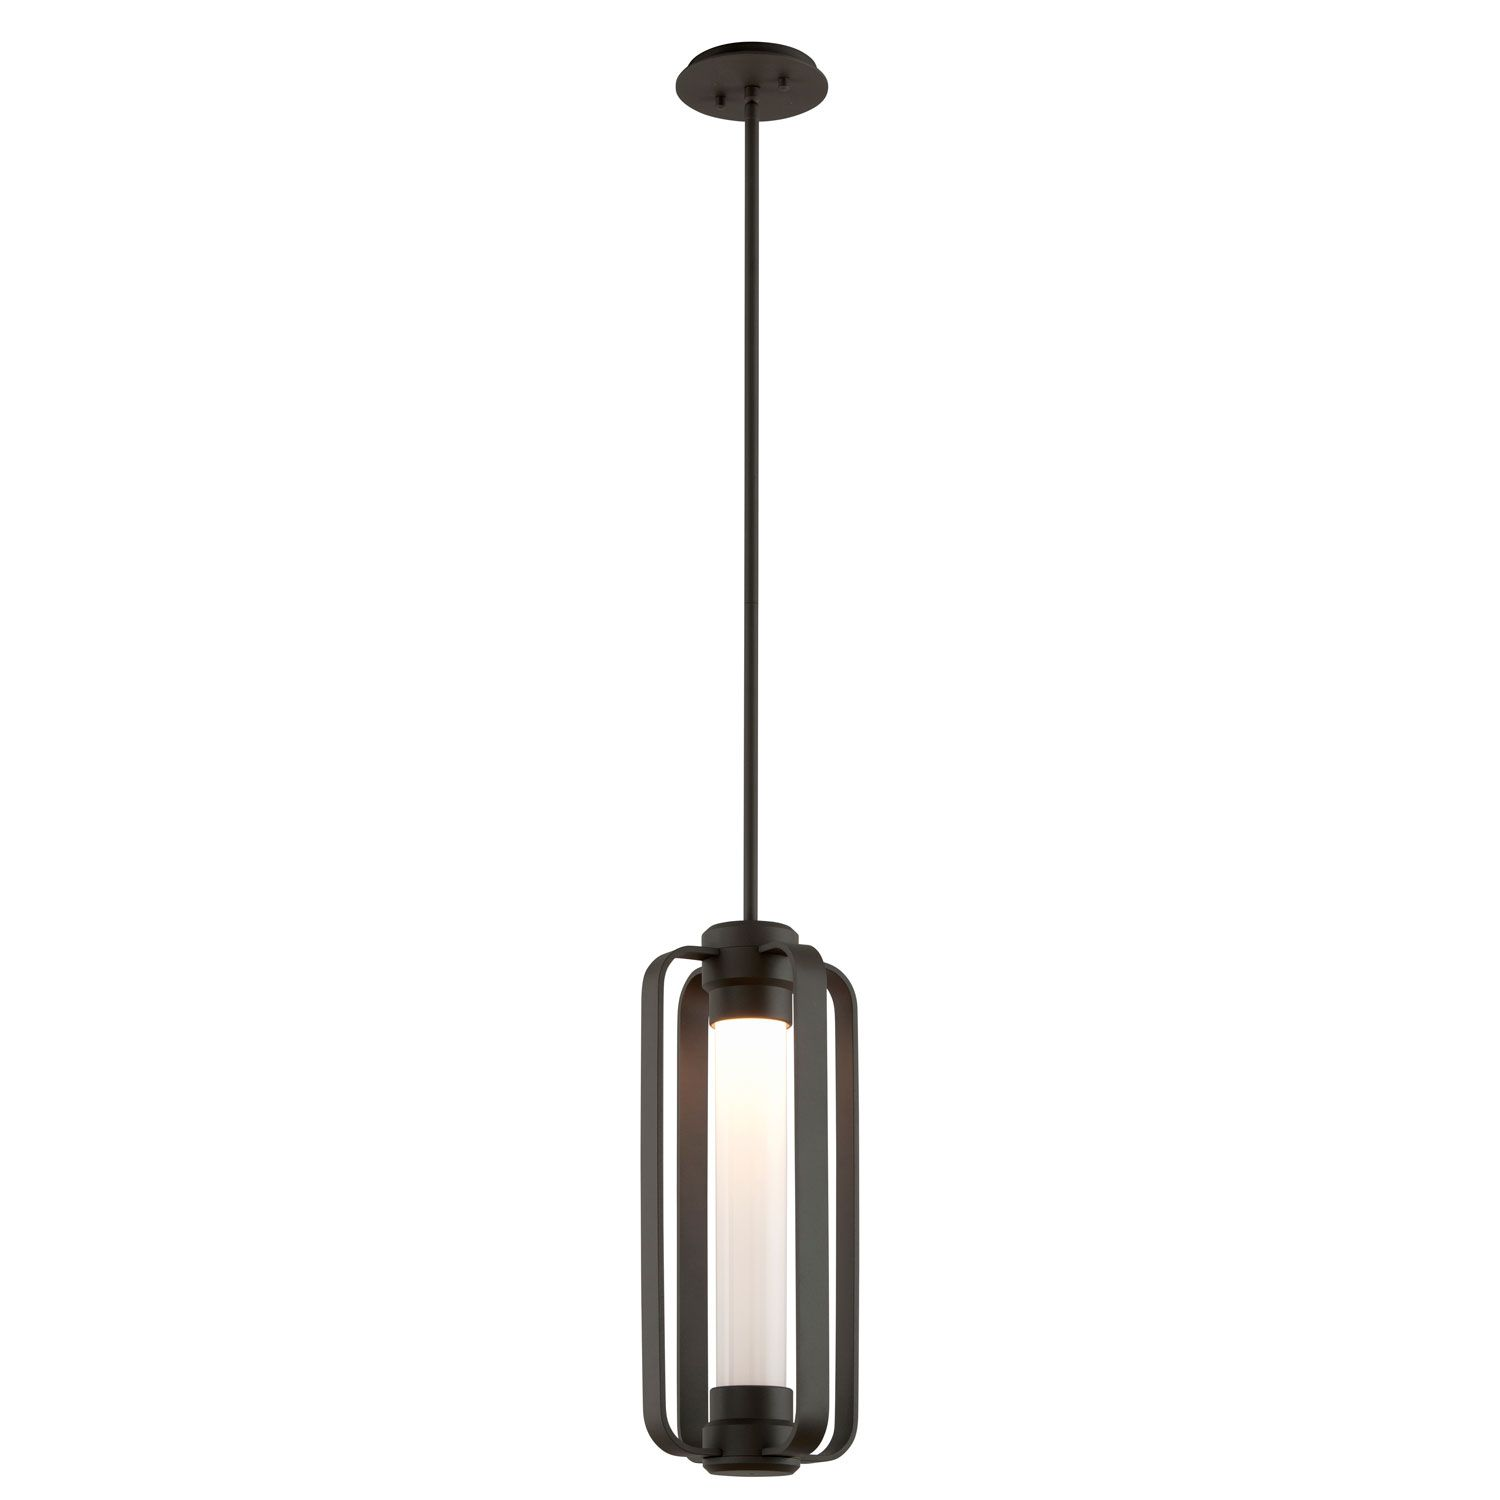 8 5 Inch One Light Outdoor Led Pendant